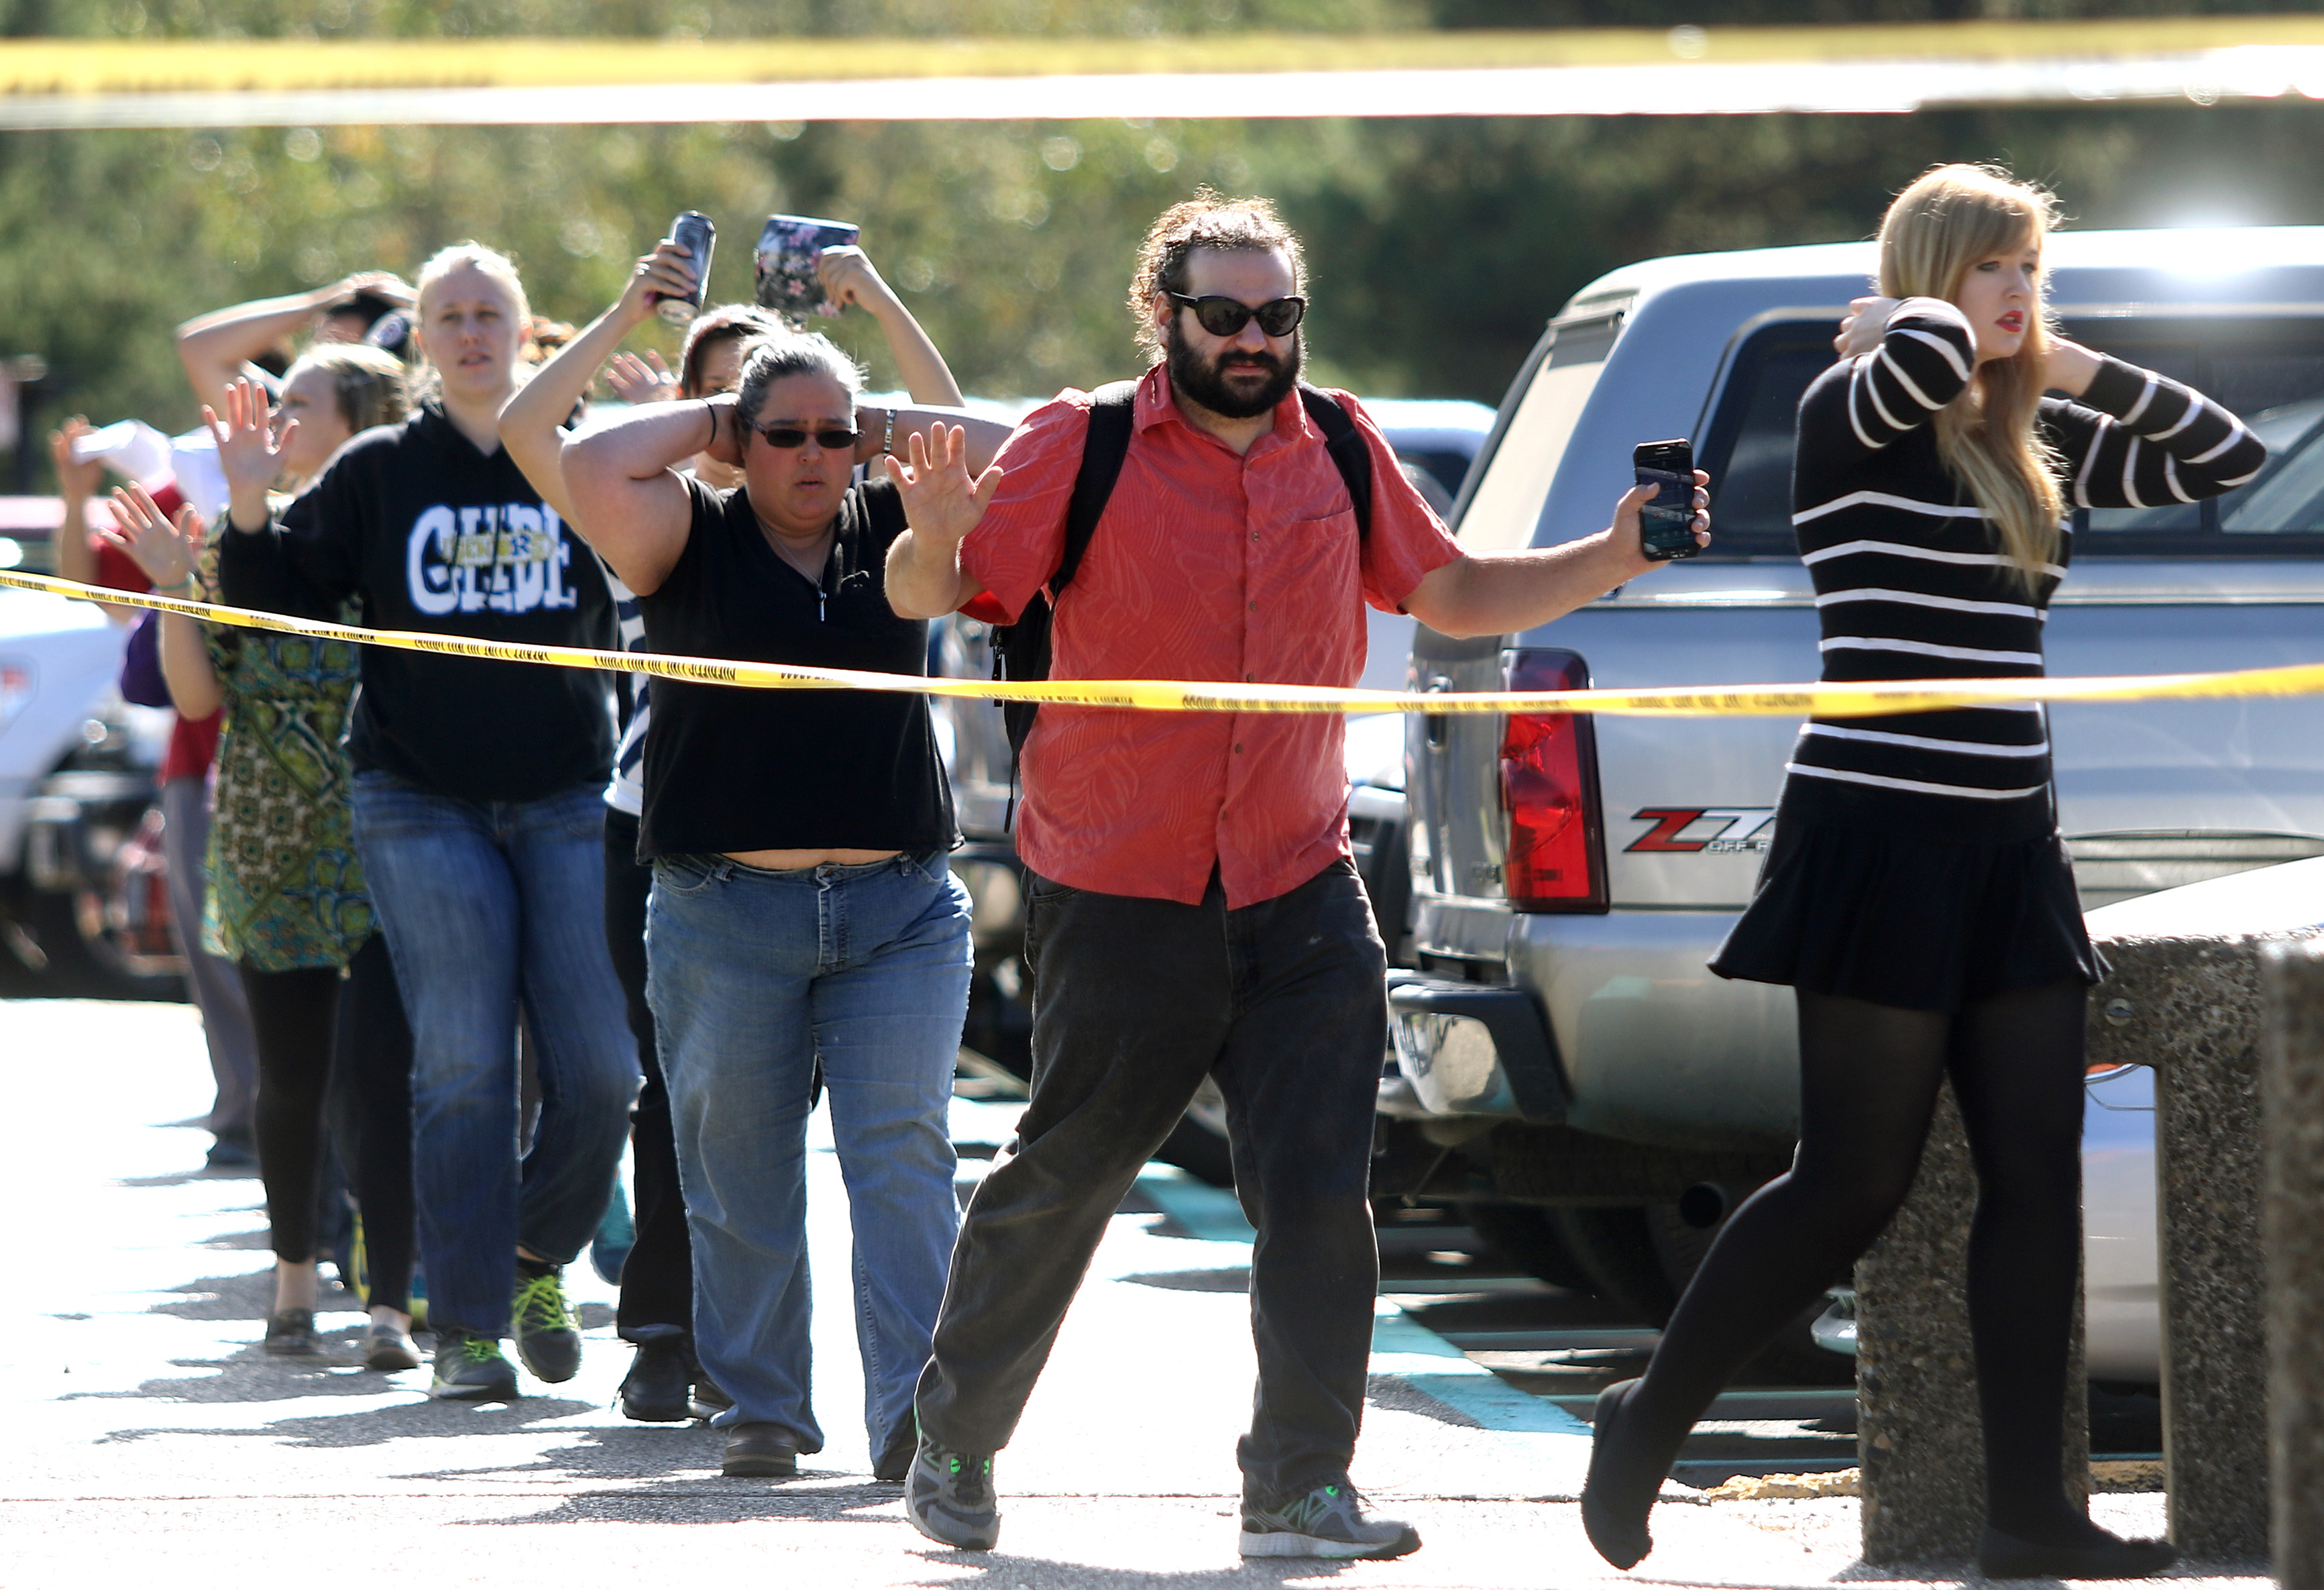 Students, staff and faculty are evacuated from Umpqua Community College in Roseburg, Ore. after a deadly shooting Thursday, Oct. 1, 2015. (Michael Sullivan /The News-Review via AP) MANDATORY CREDIT